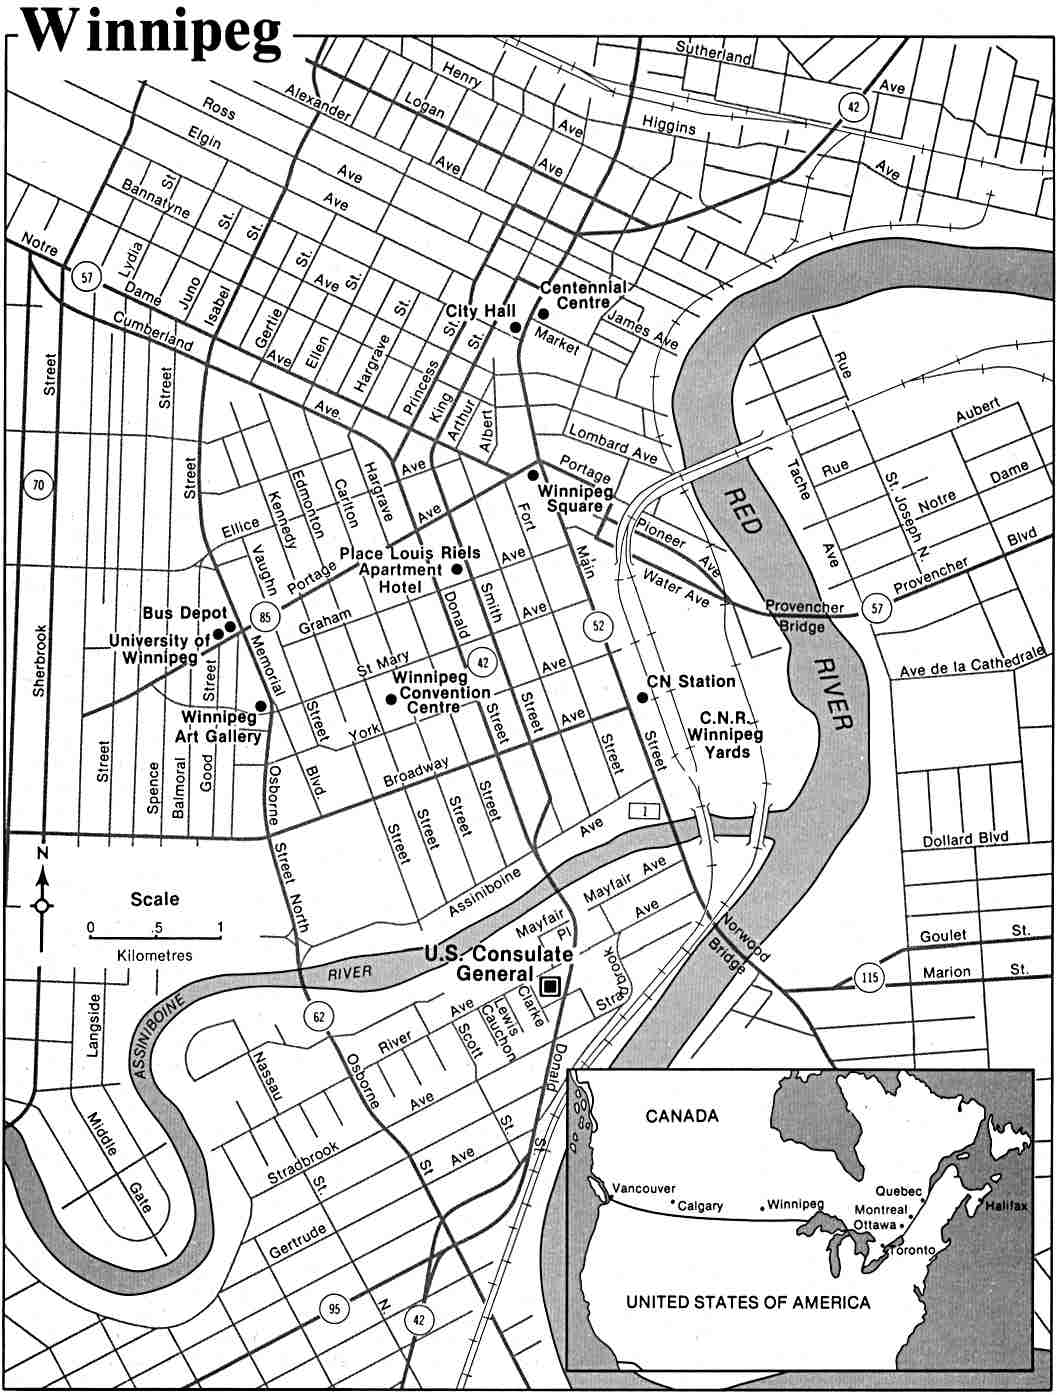 Winnipeg City Map, Manitoba, Canada